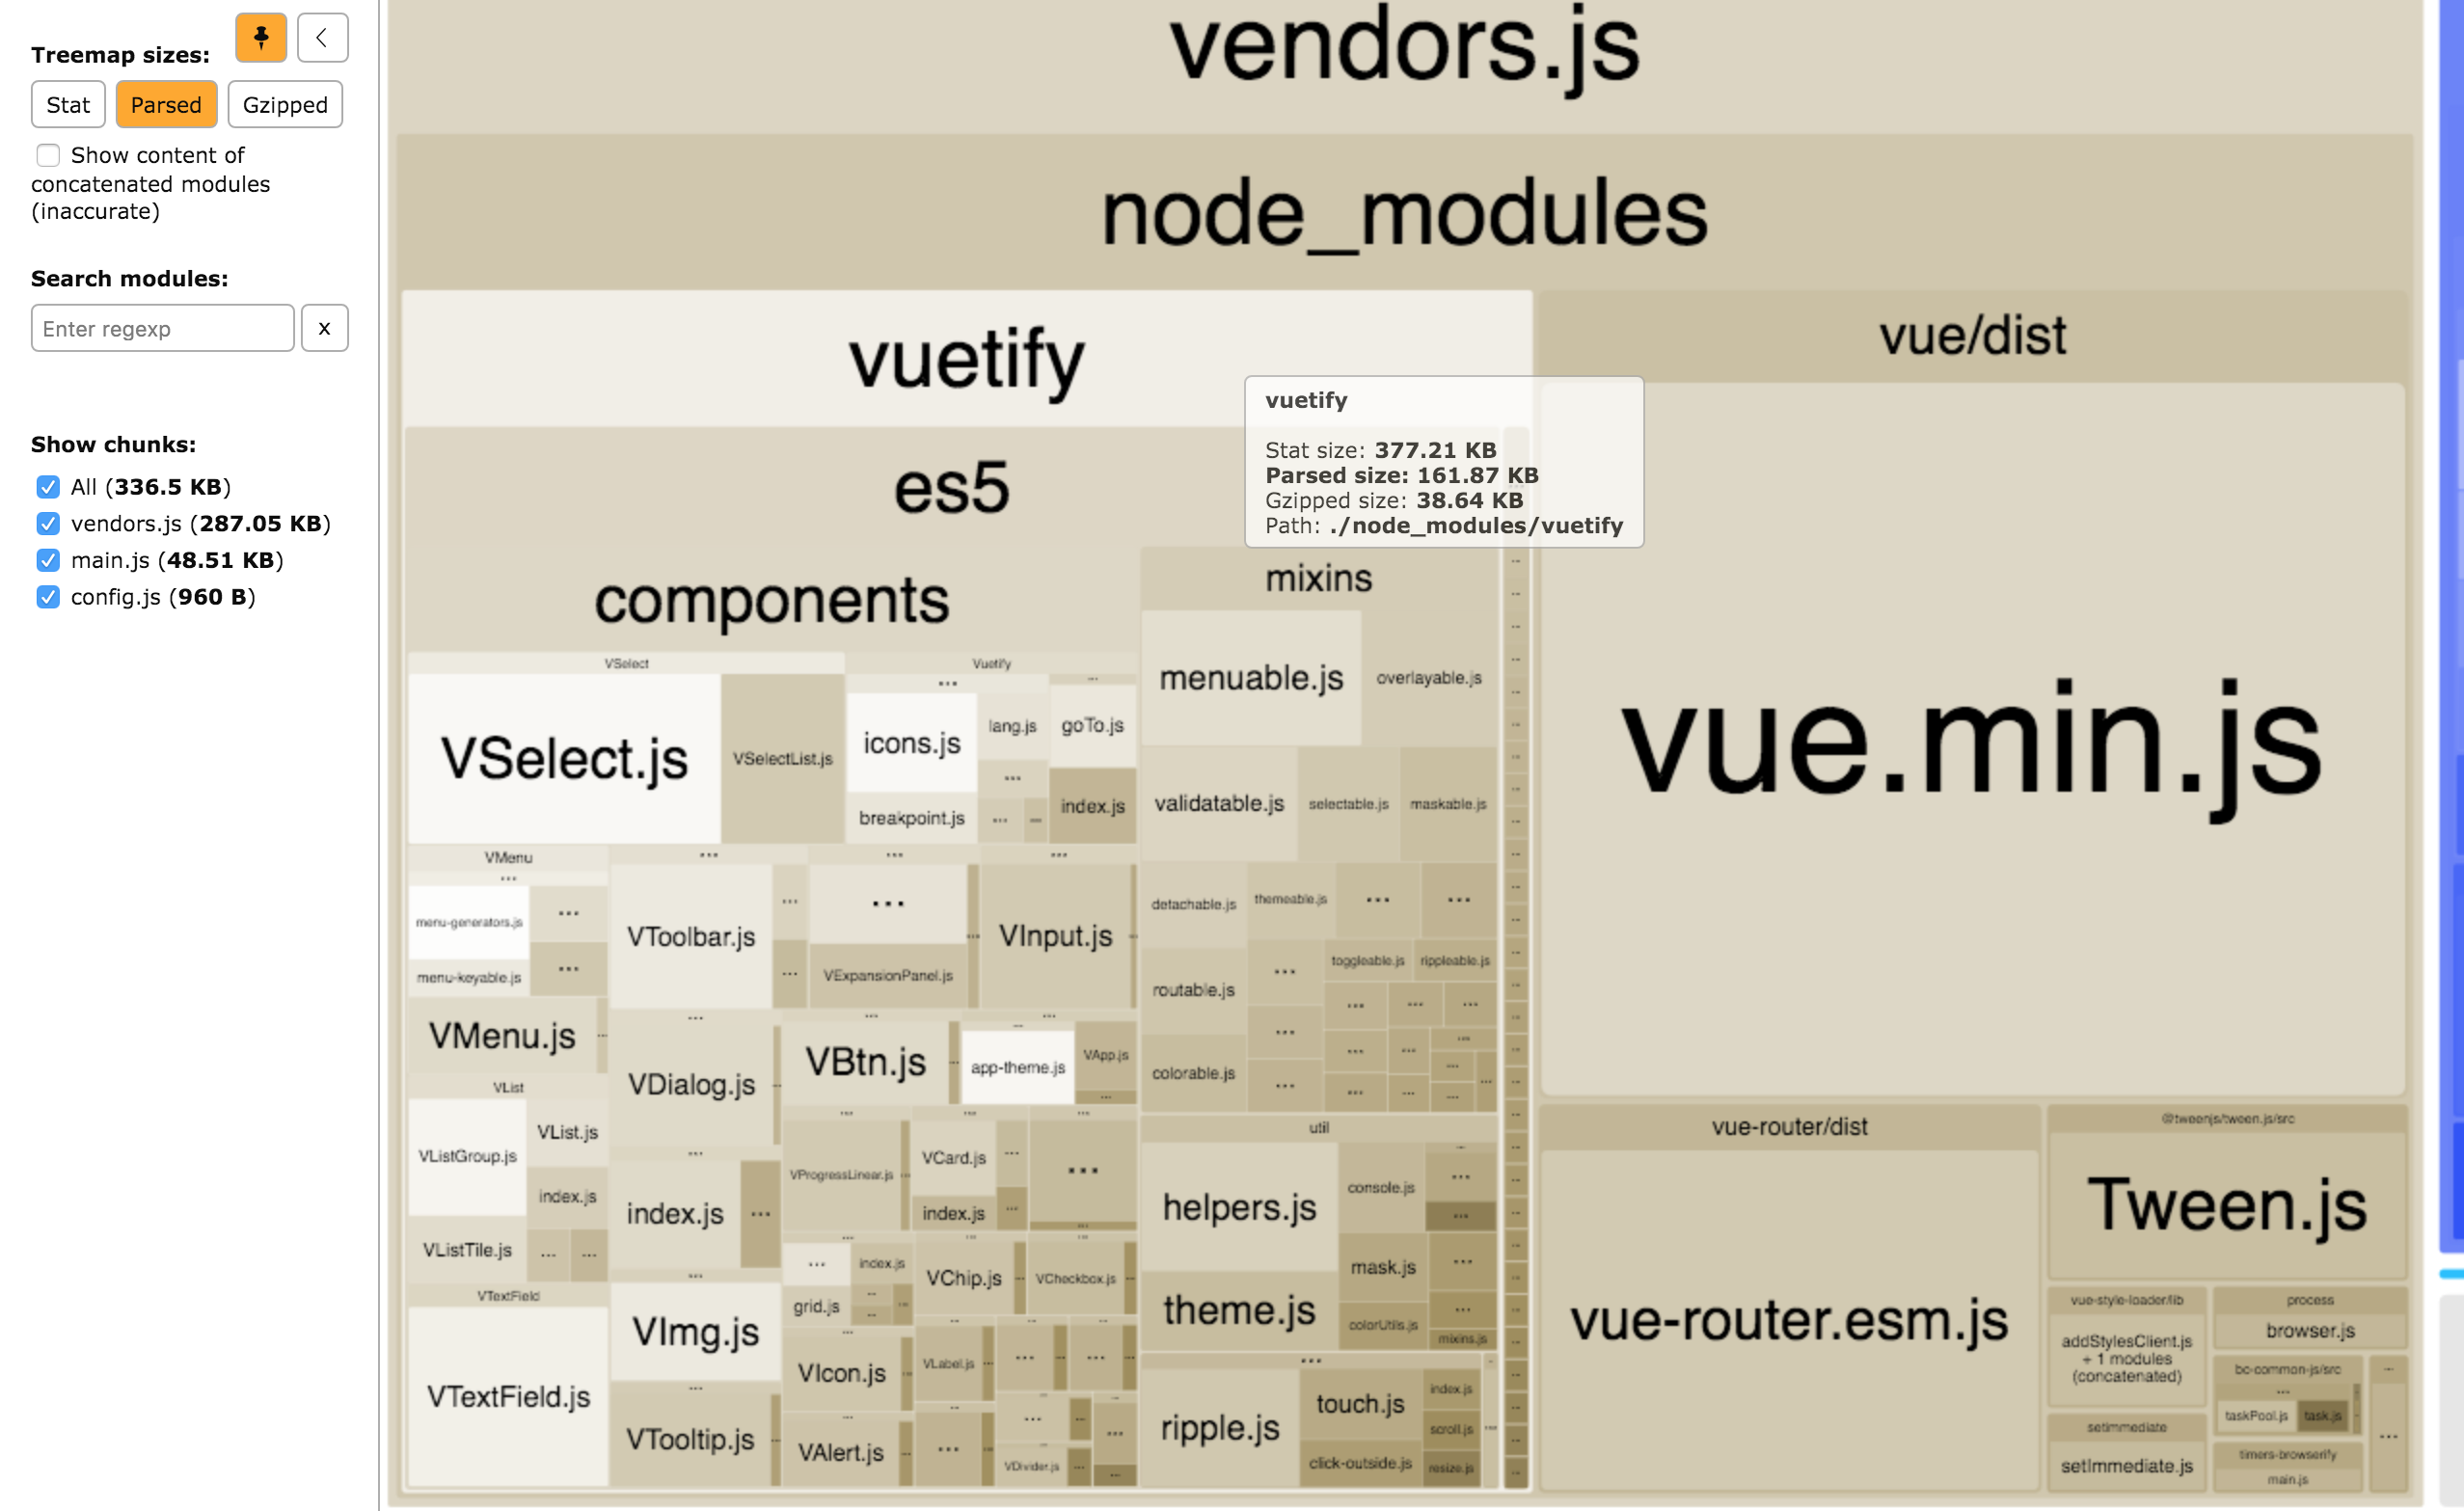 Build is bigger than a-la-carte · Issue #26 · vuetifyjs/vuetify